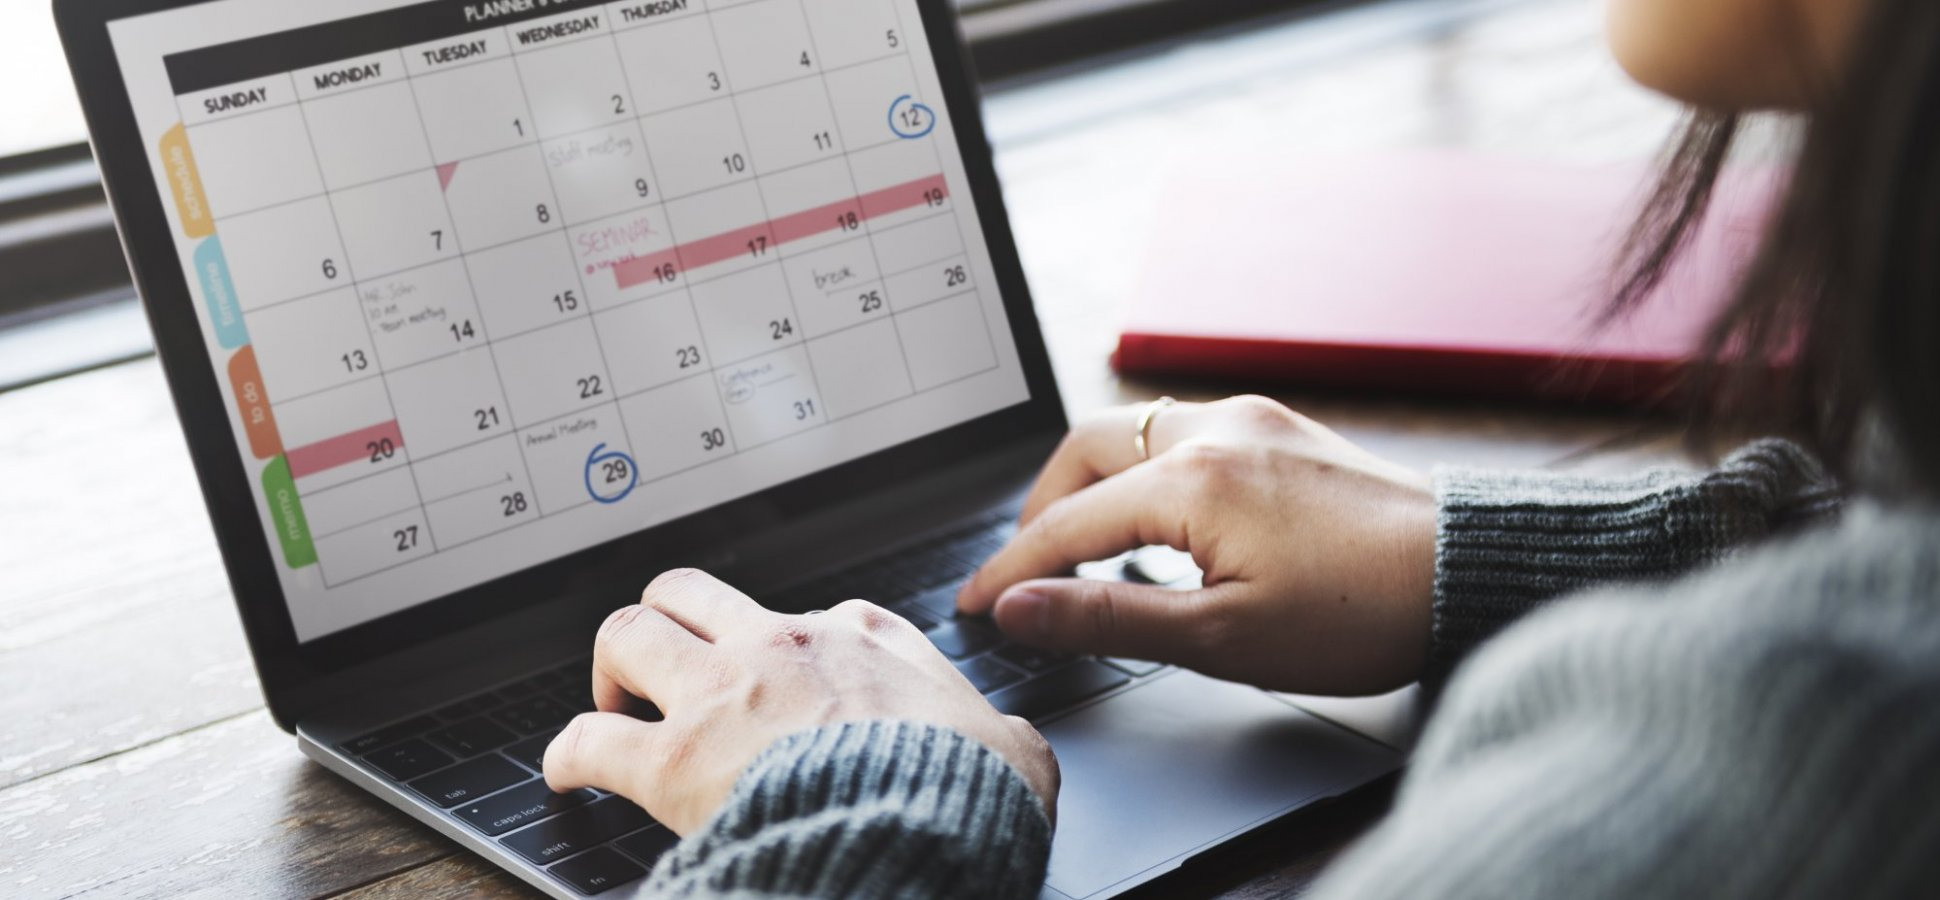 How A 'Zero-Based' Calendar Can Supercharge Your Productivity